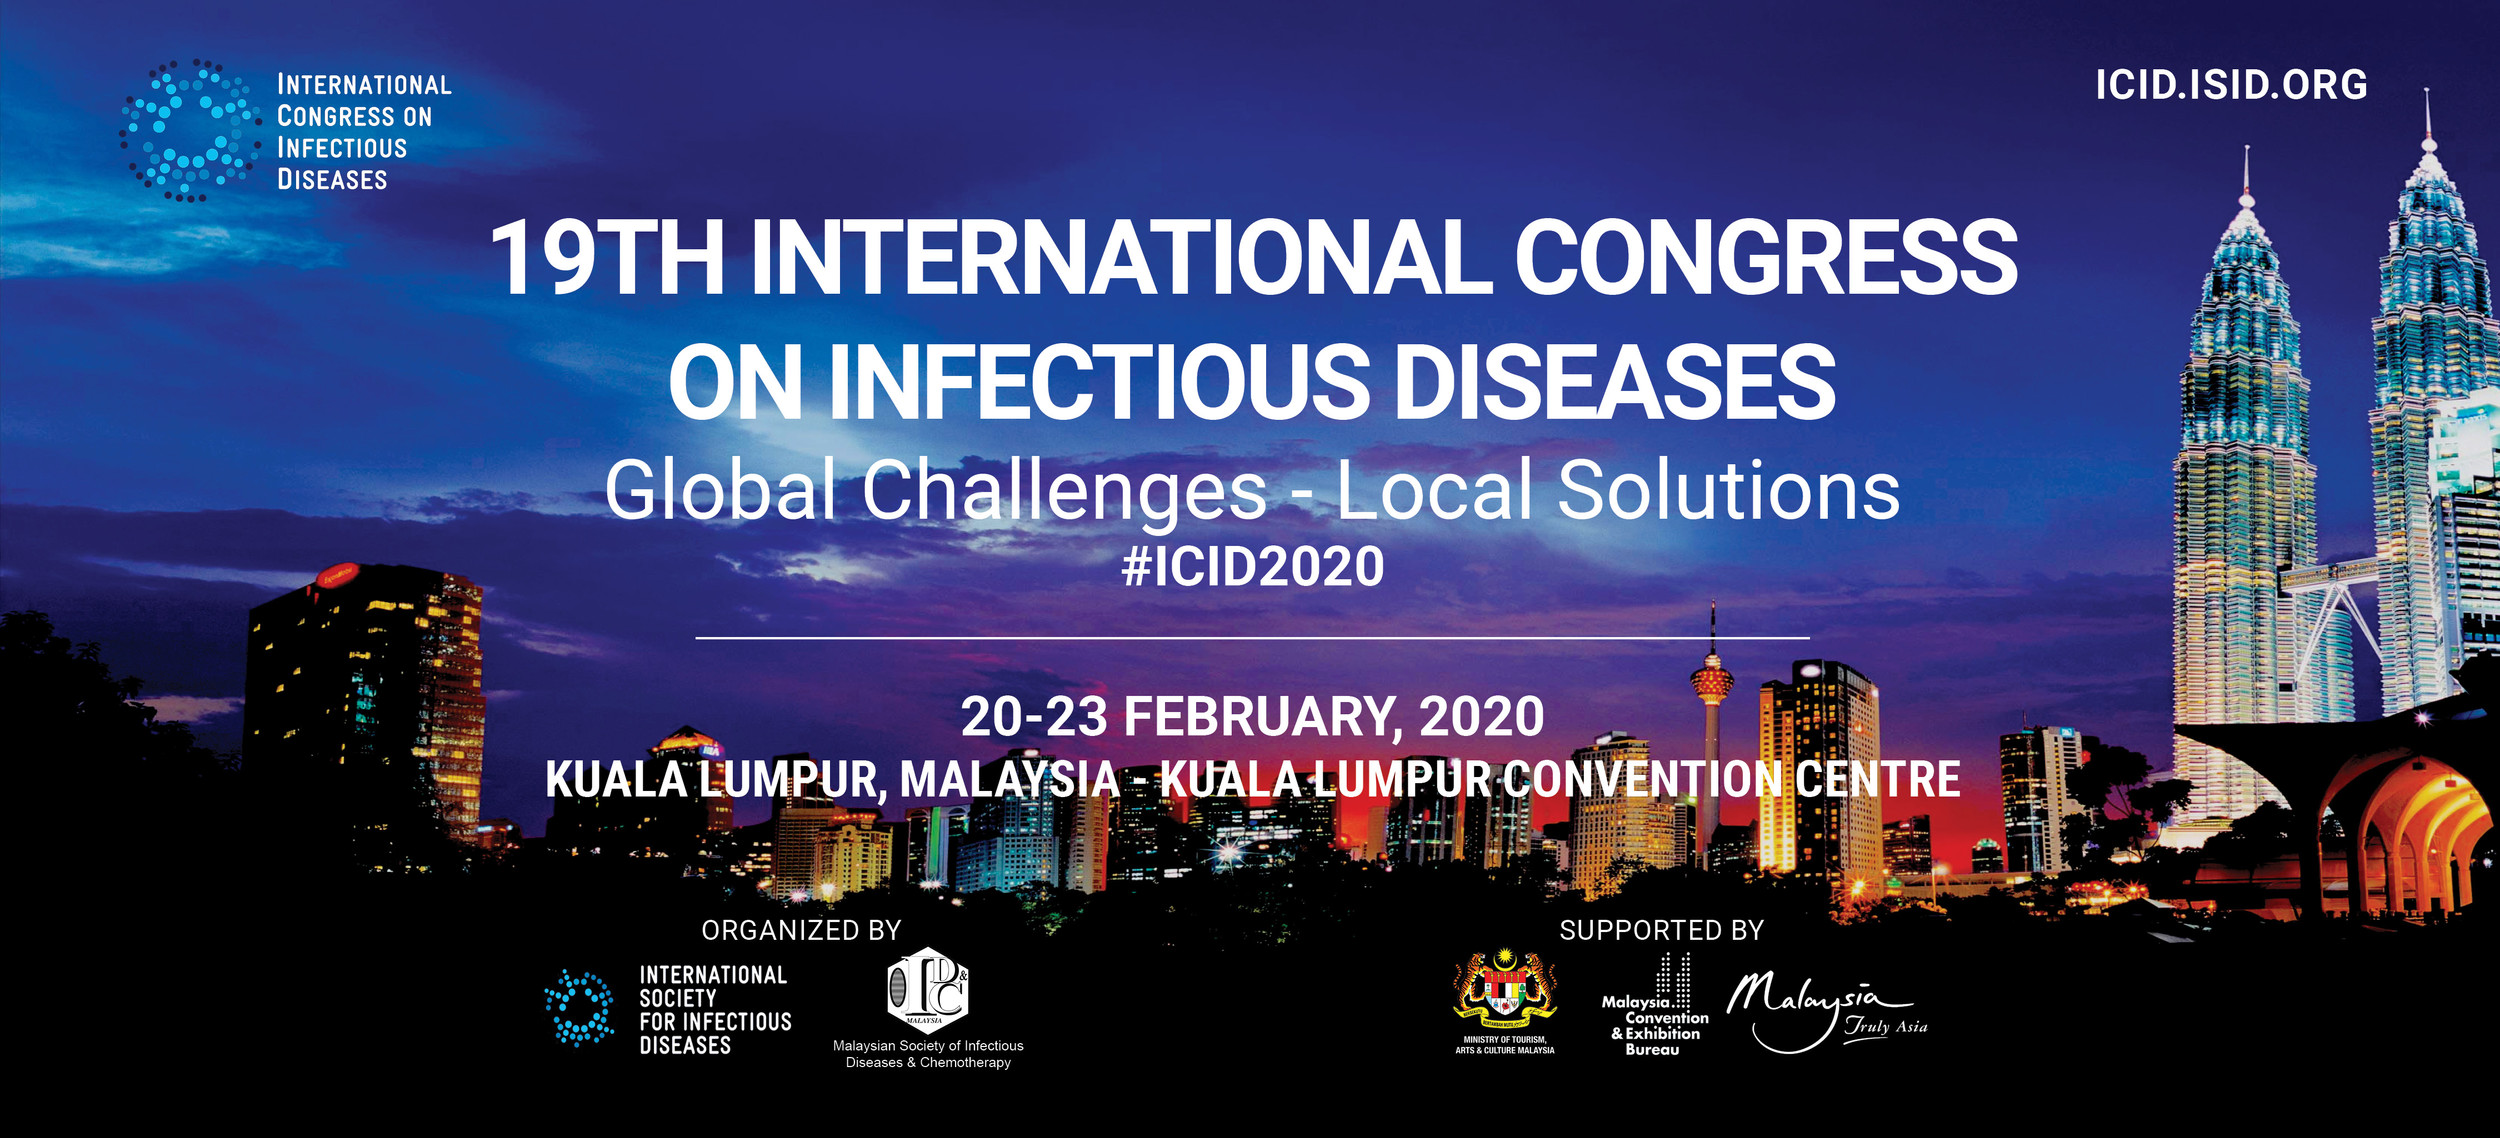 International Congress on Infectious Diseases - ICID